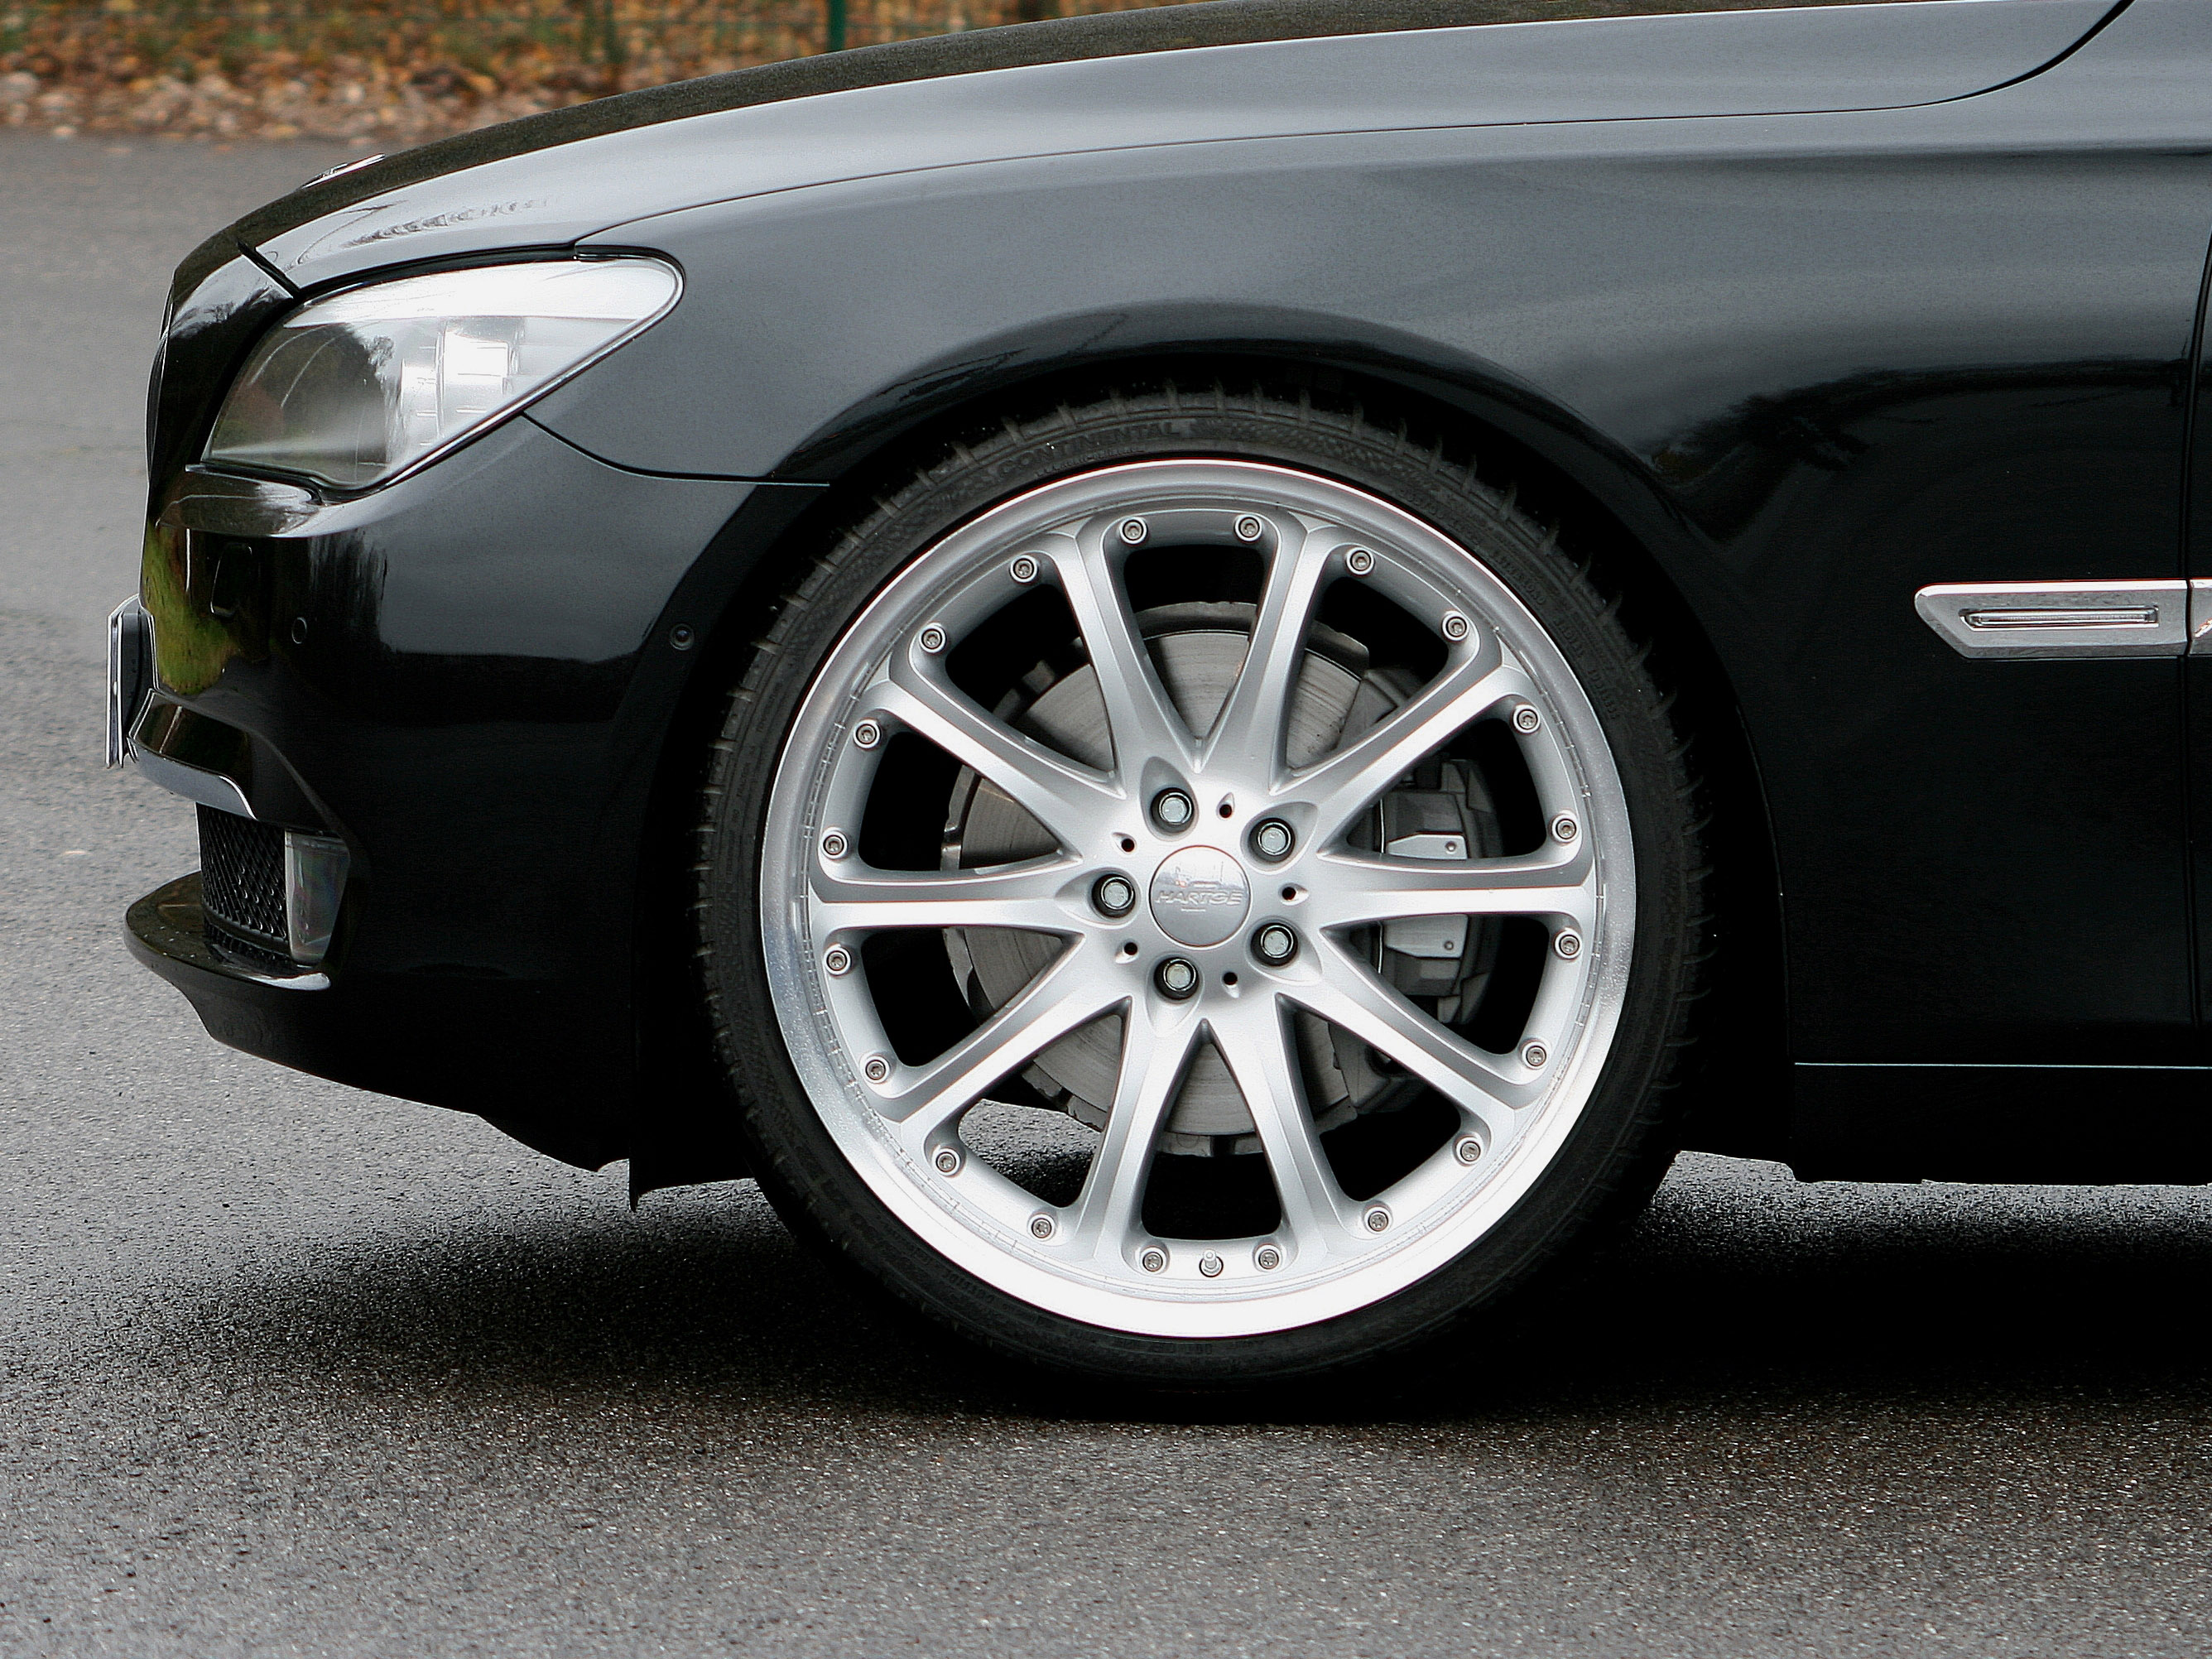 Hartge 22 Inch Classic Wheel For Bmw 7 Series Picture 11361